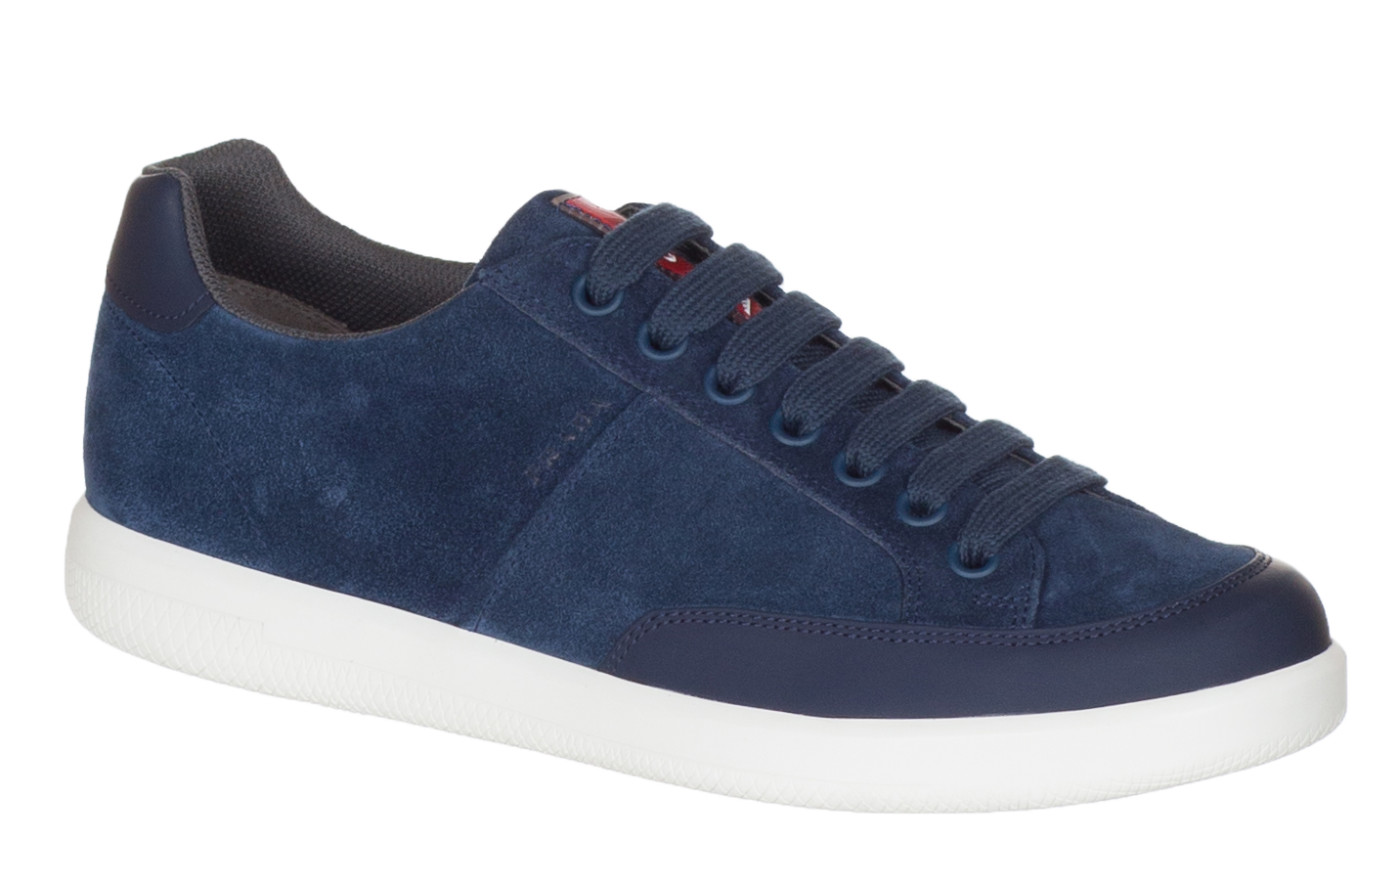 6eacdfbe1f9b Prada Men s Blue Suede 4E3027 Low Top Sneakers Shoes